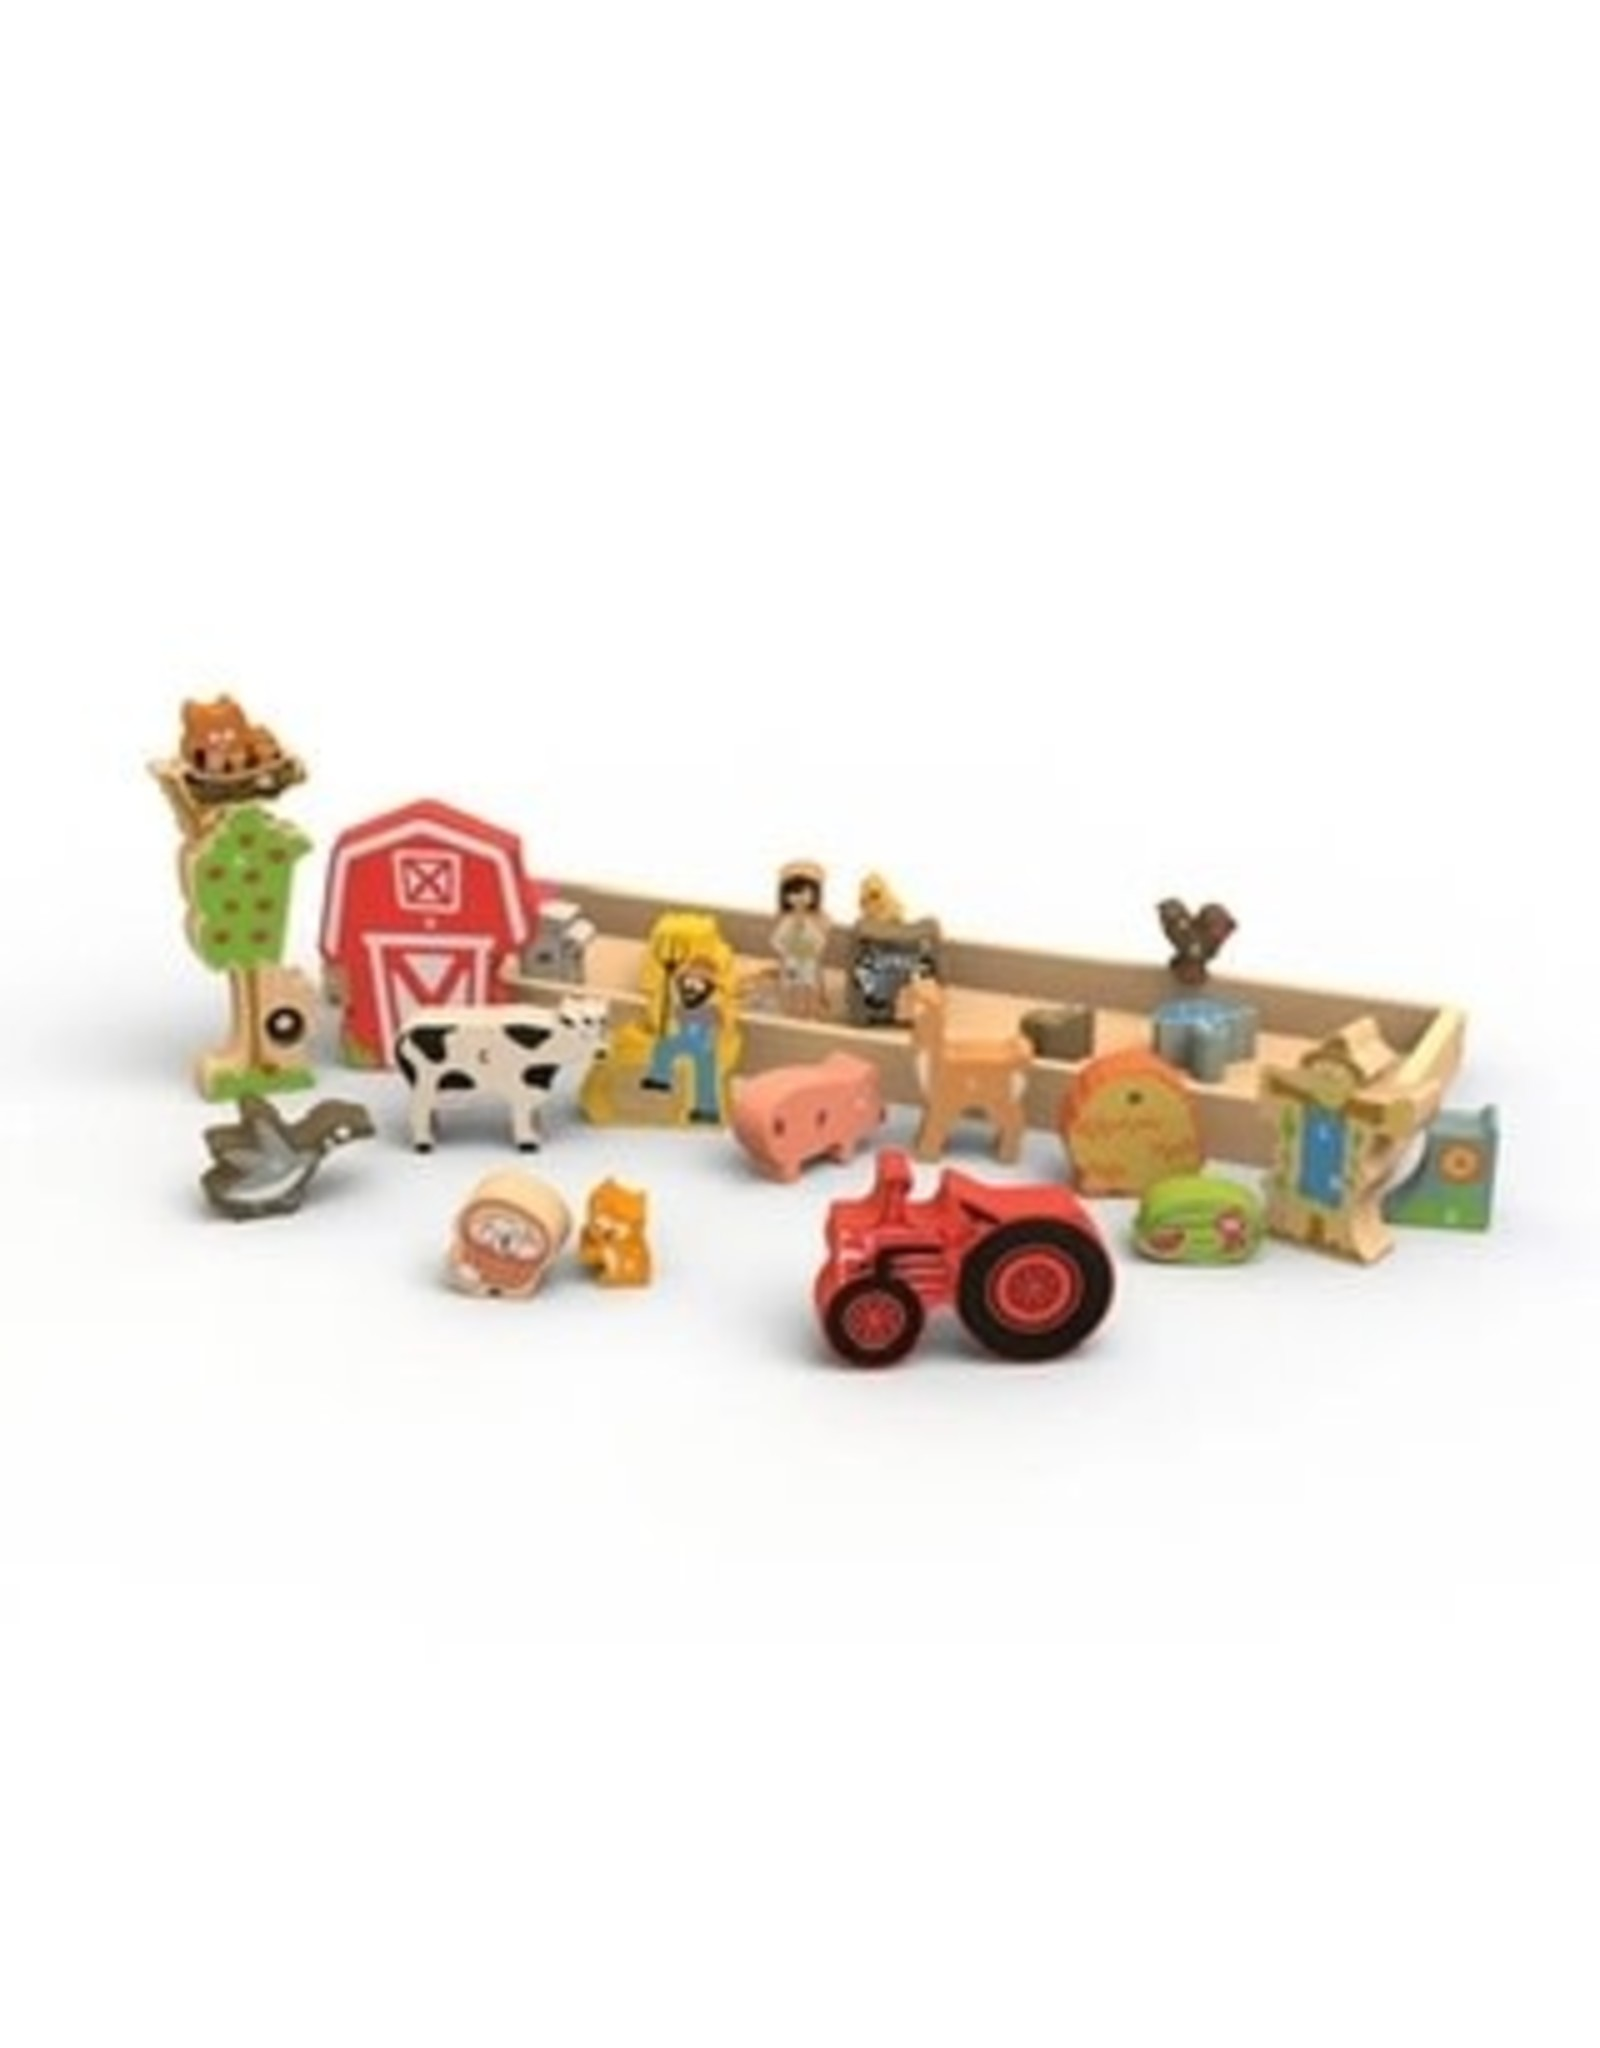 Wooden Farm A to Z Puzzle and Playset